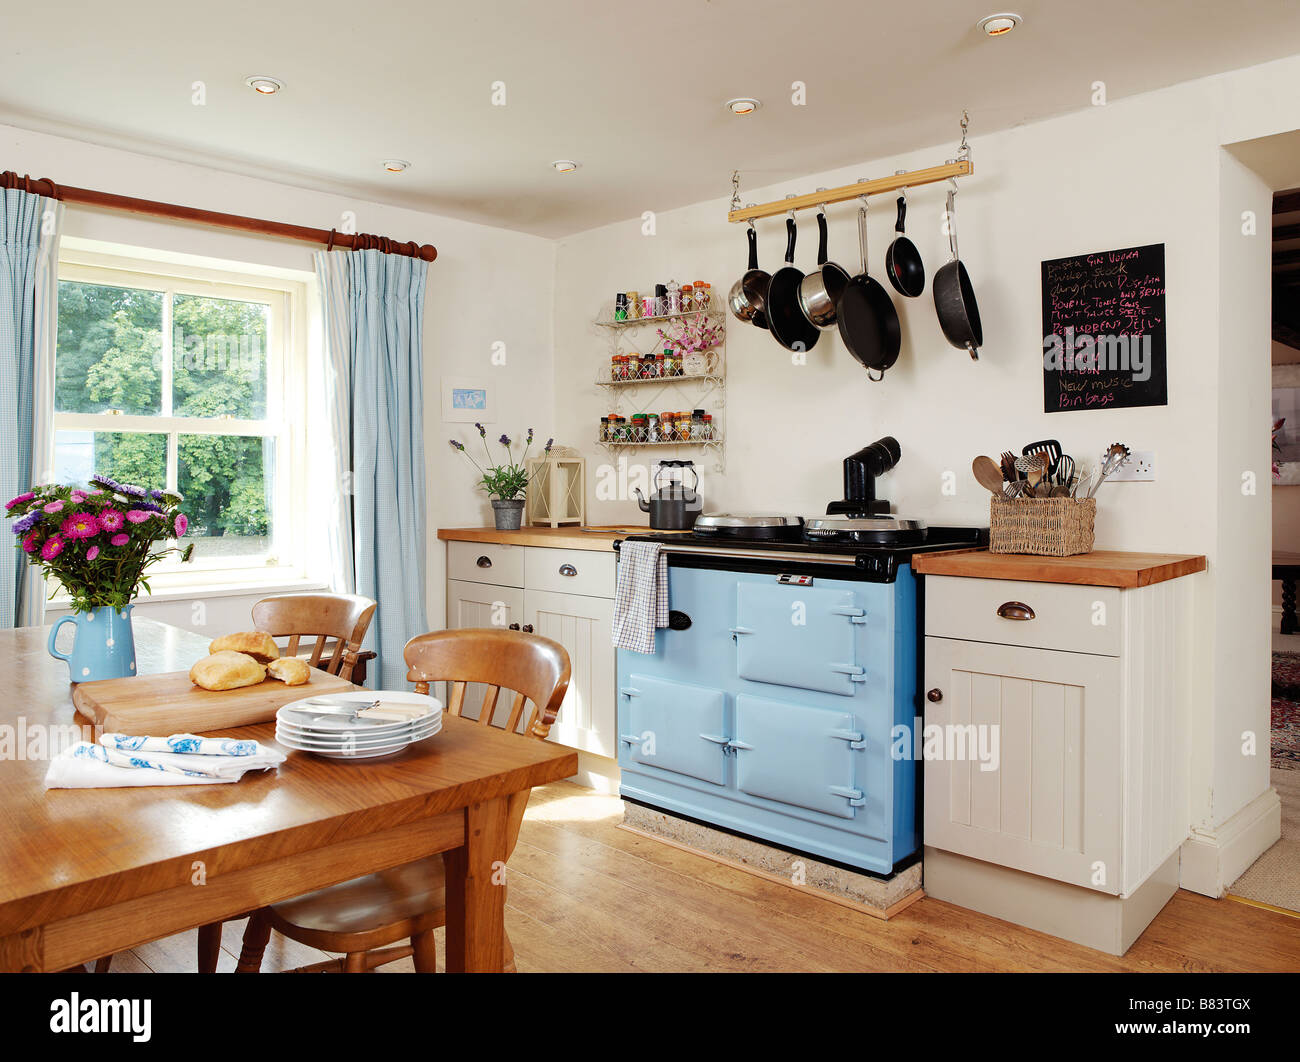 Kitchen Ideas Aga.Country Kitchen Ideas With Aga This Is The Crosby